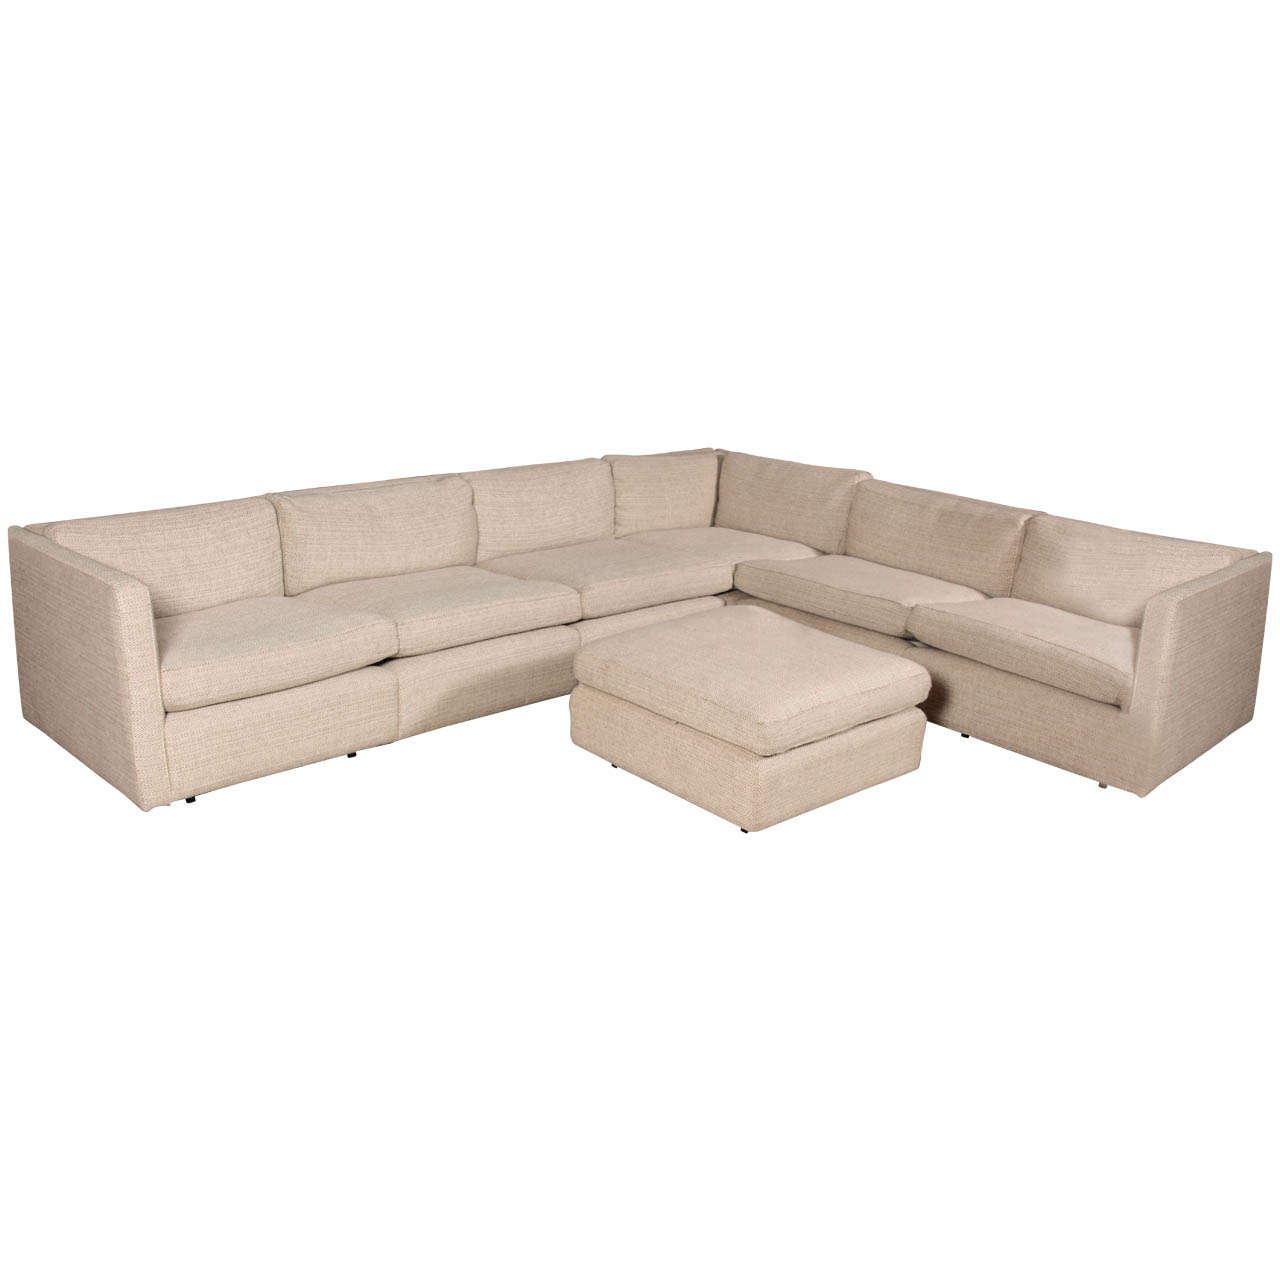 Charles Pfister Sectional Sofa And Ottoman In Maharam Fabric Knoll 1  sc 1 st  1stDibs : knoll sectional - Sectionals, Sofas & Couches